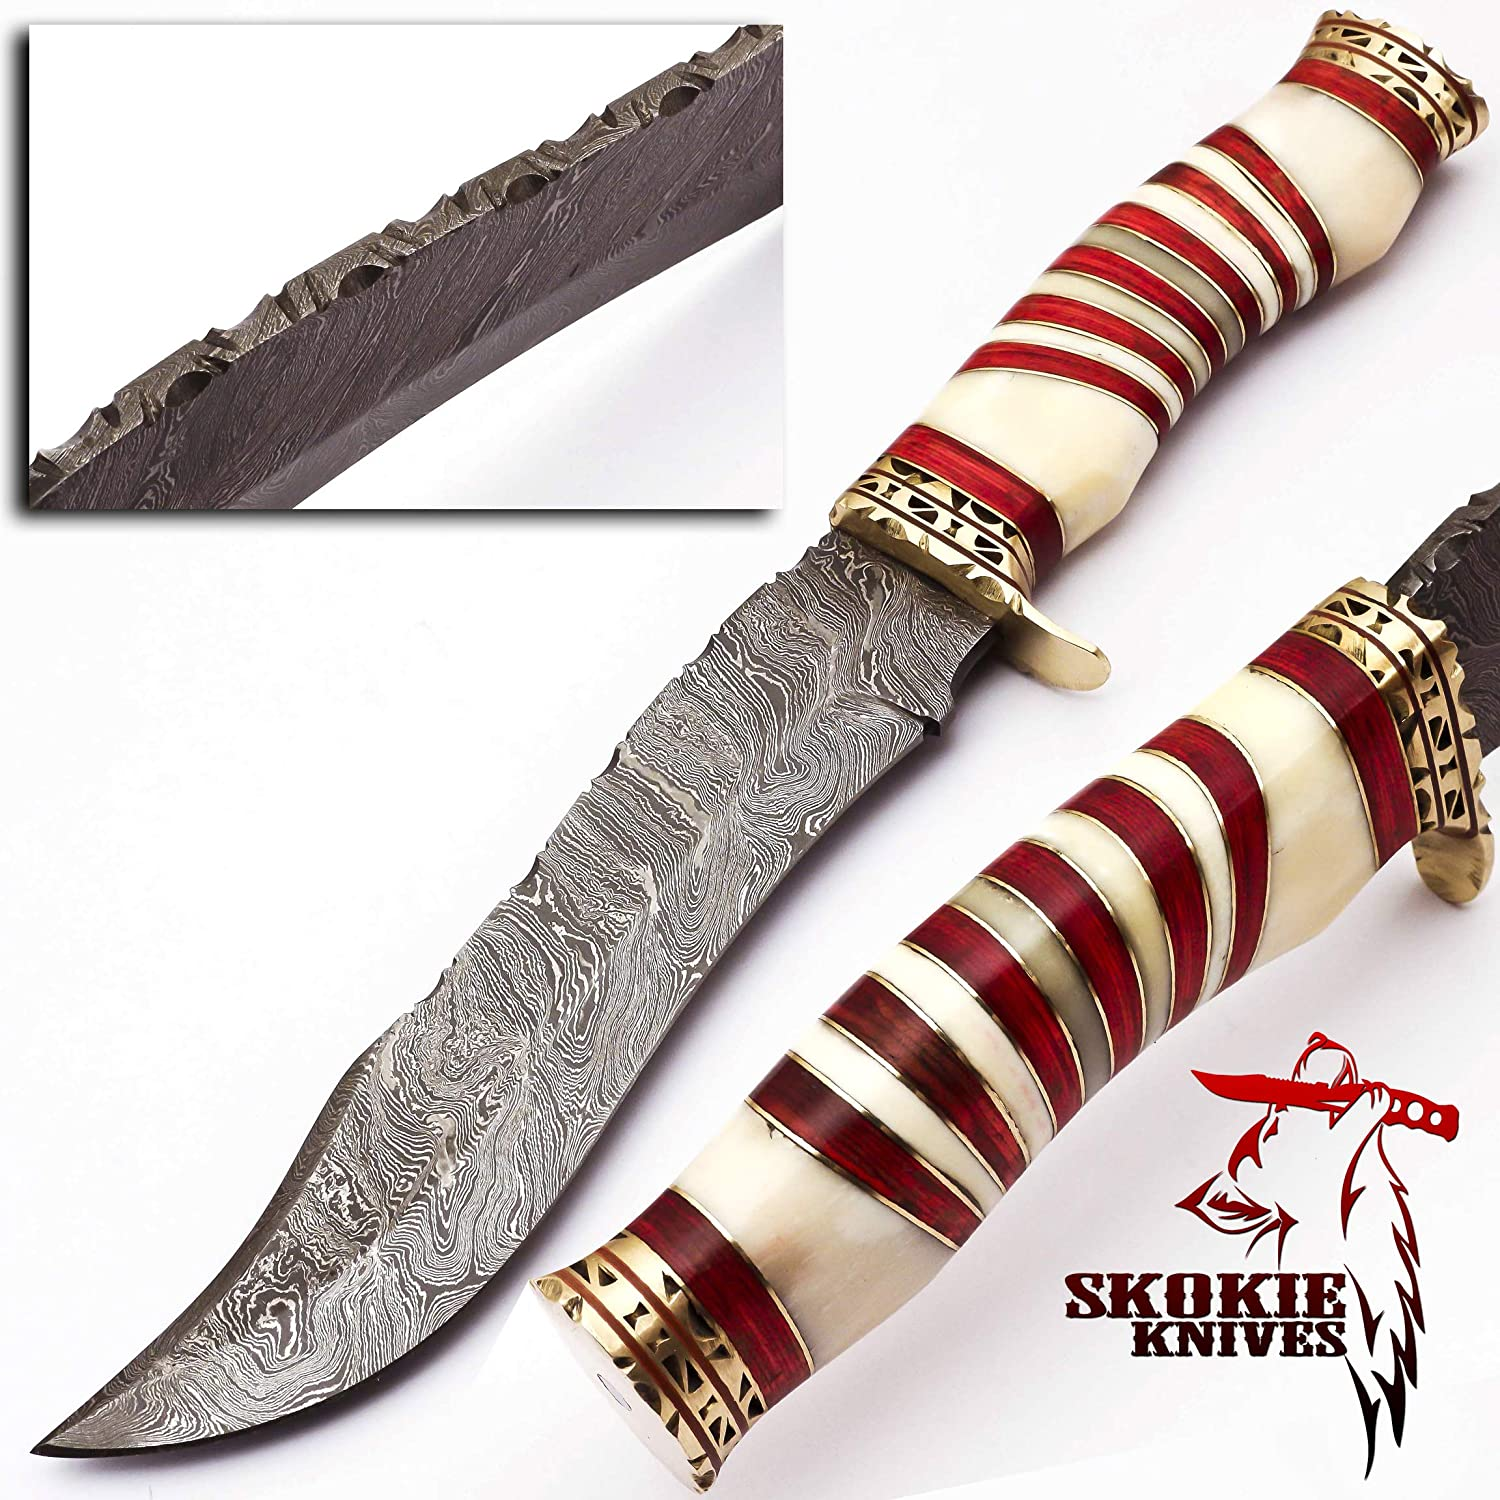 Skokie Knives Custom Hand Made Damascus Steel Hunting Bowie Knife Handle Camel Bone